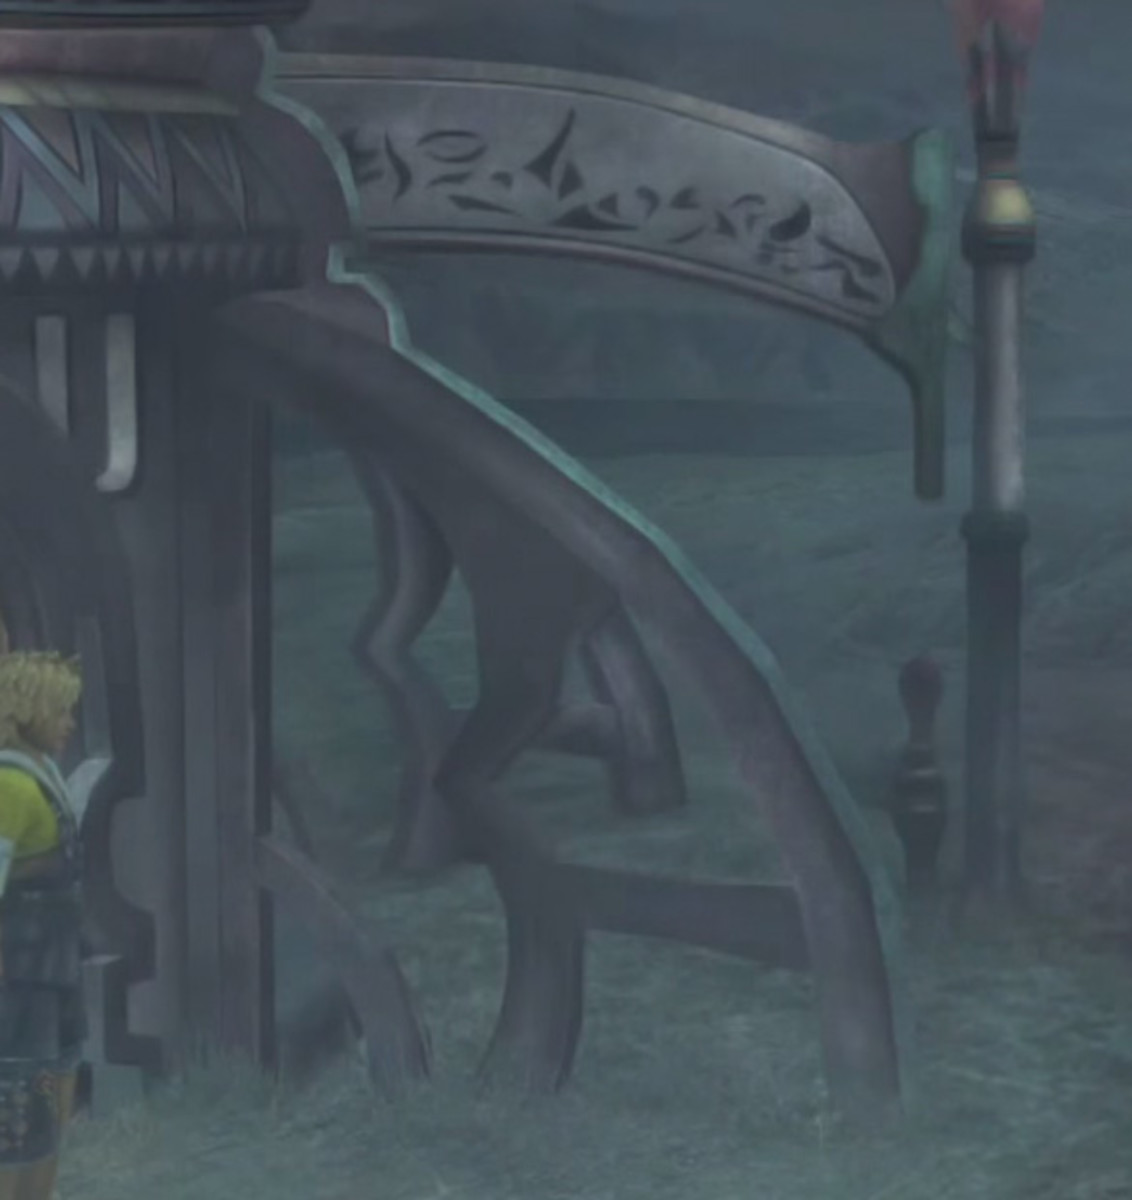 Wait, you mean we could've rented a chocobo to cross the Thunder Plains and avoid fiends?!